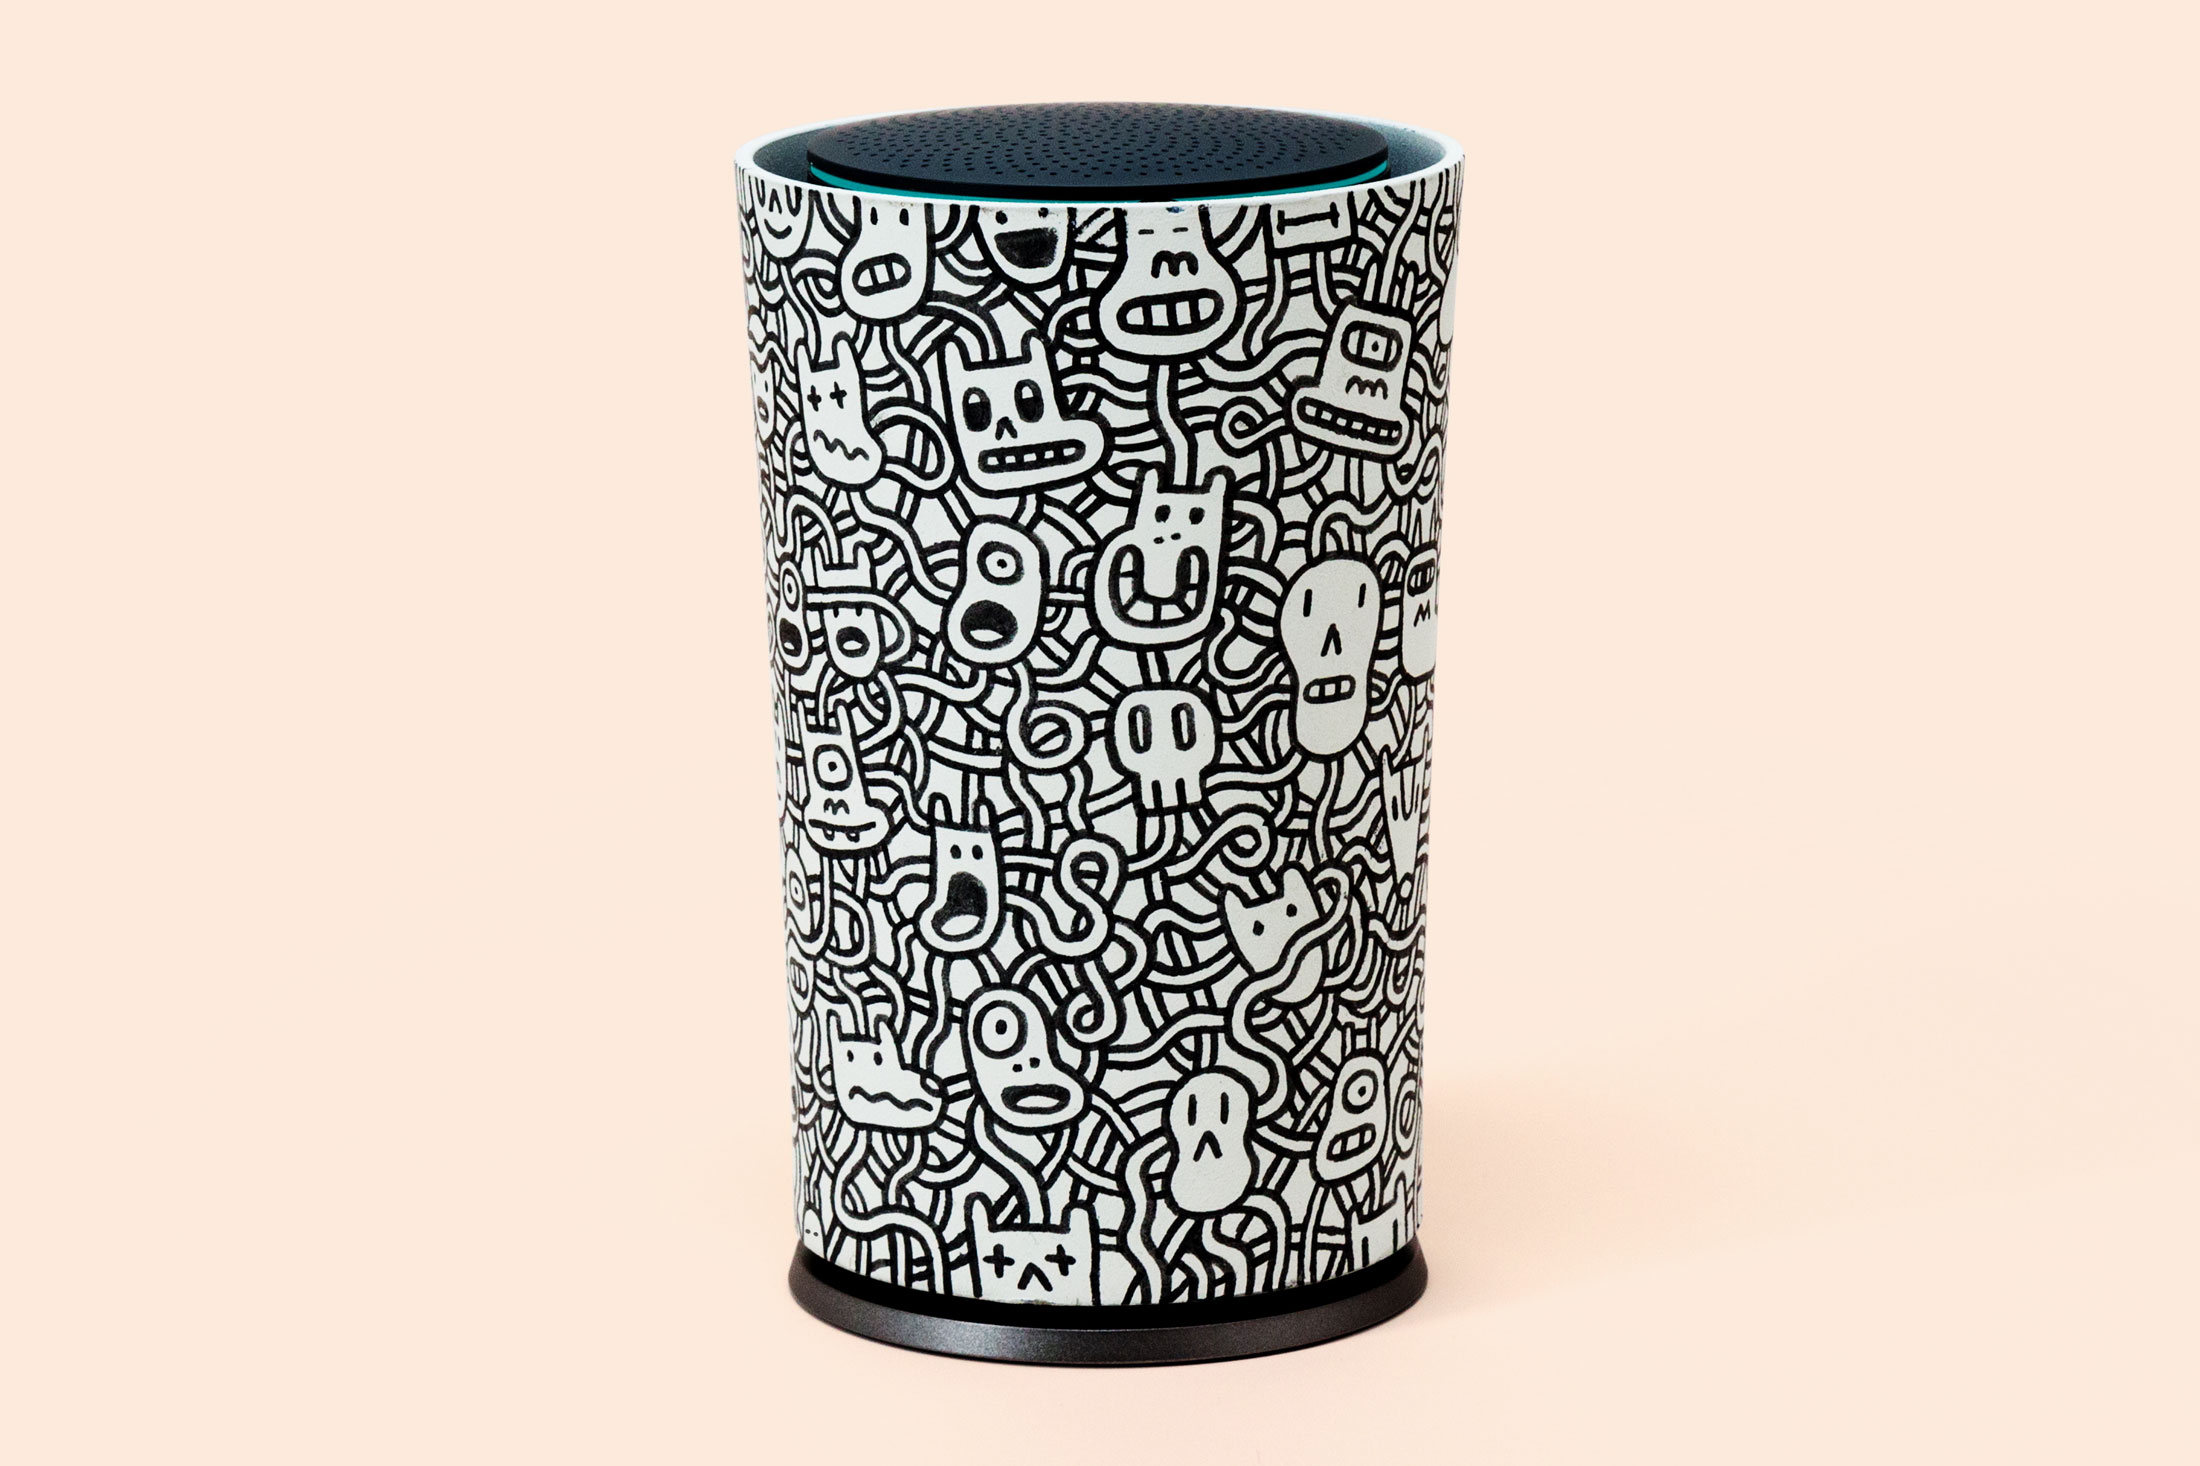 google-onhub-surface-01.jpg